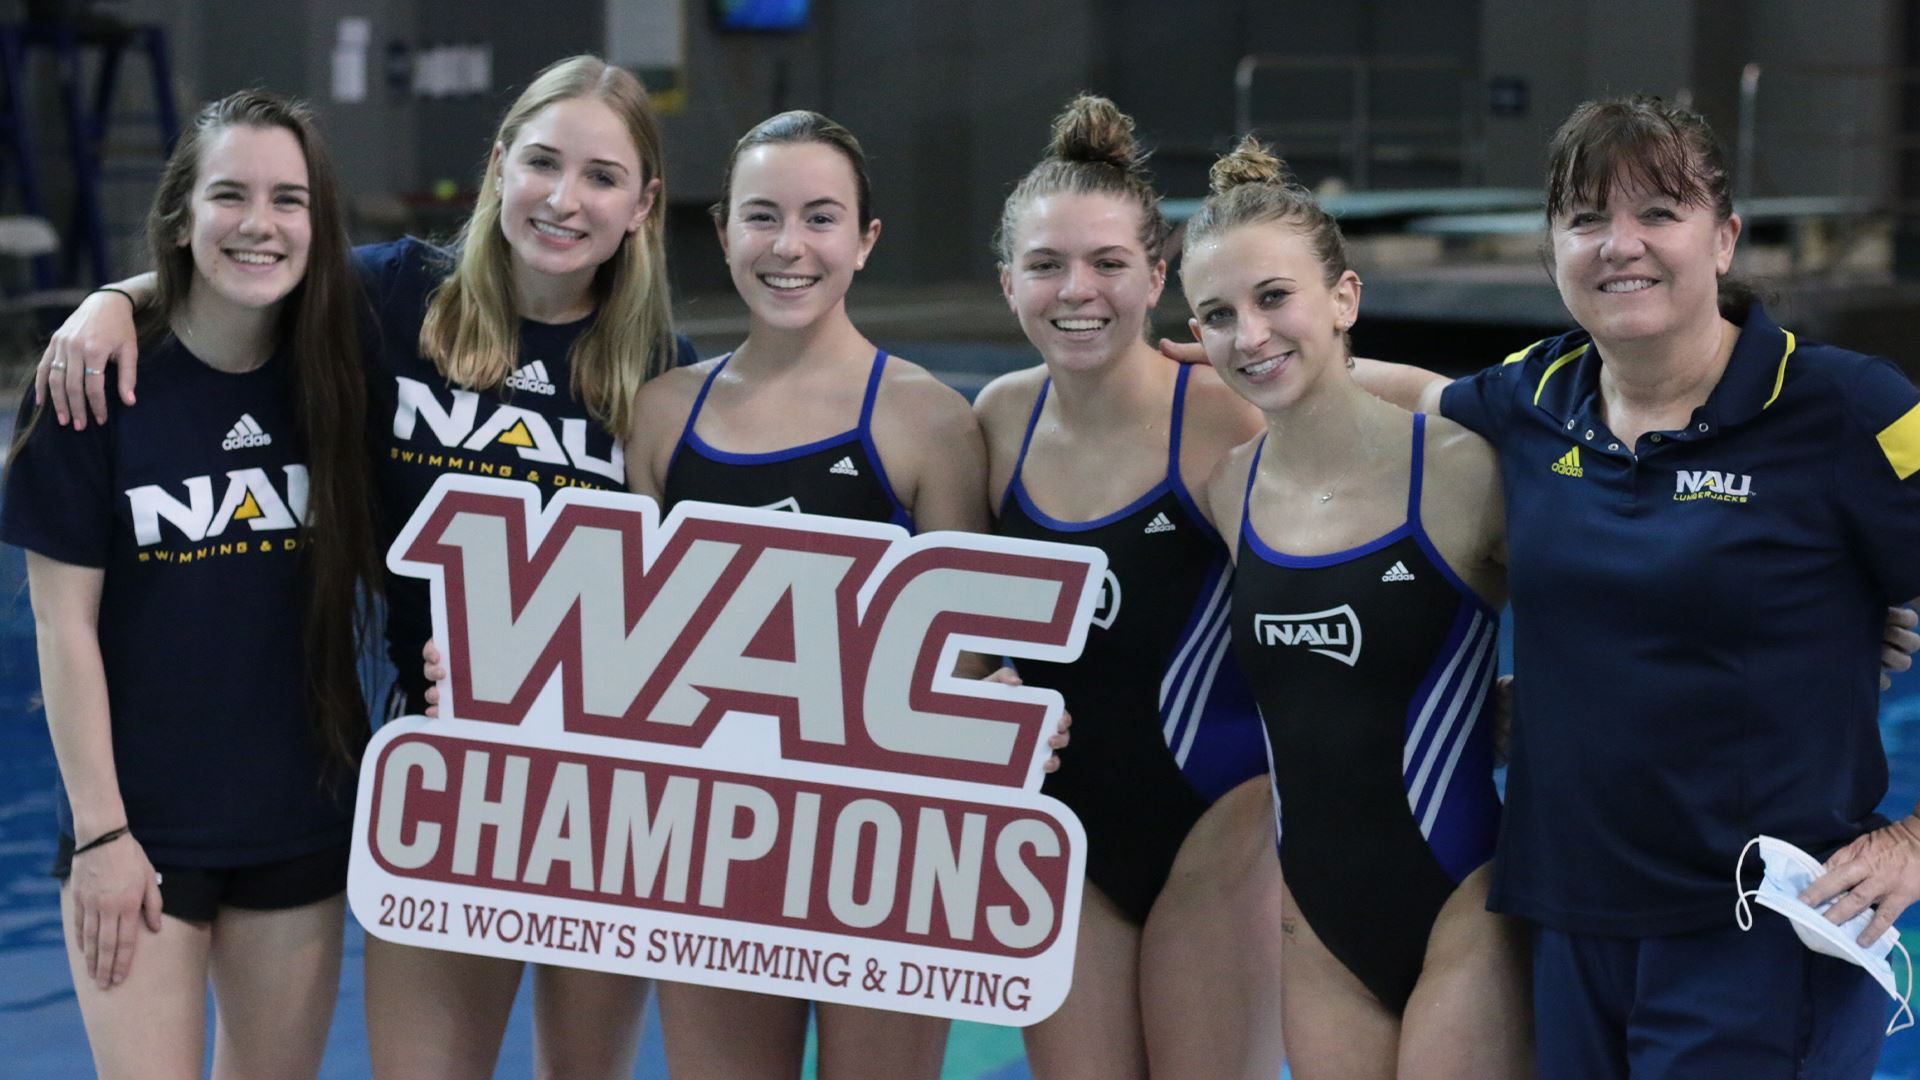 Swimming and diving team WAC champions